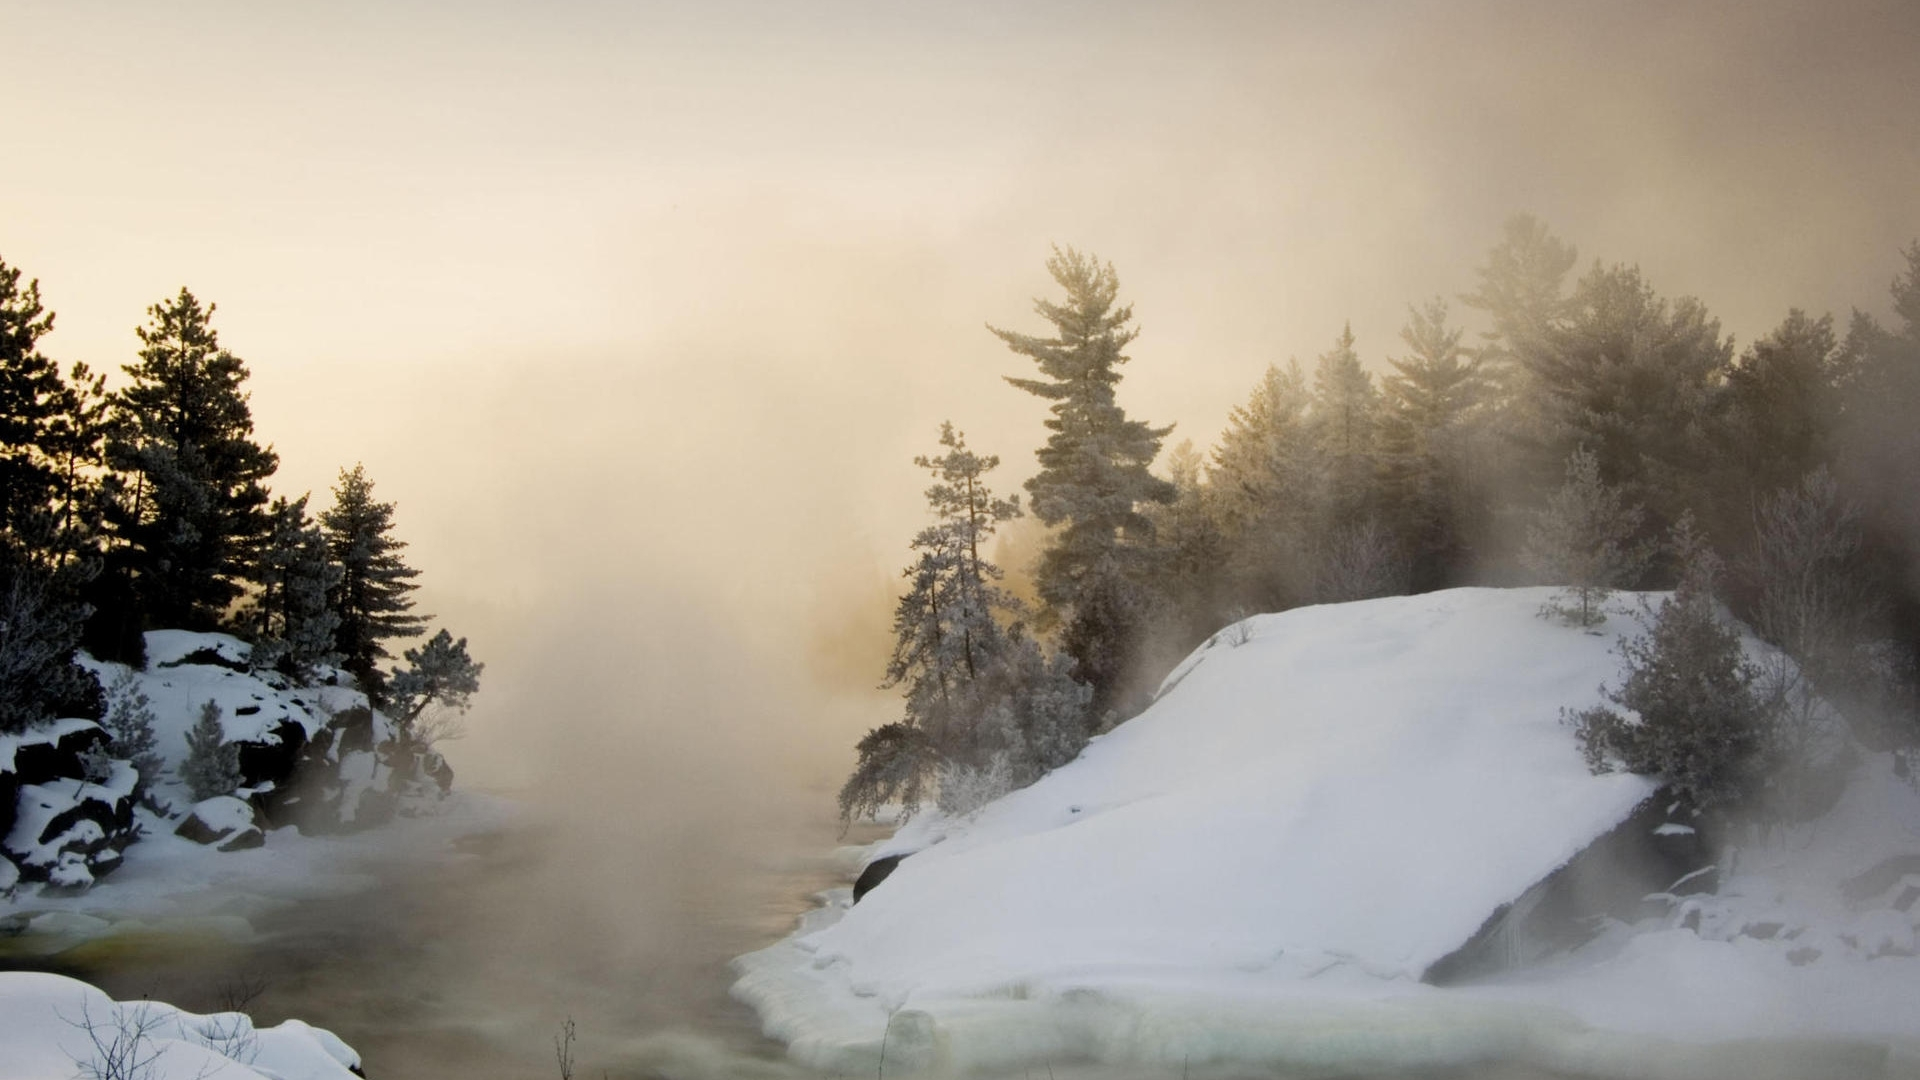 44599 download wallpaper Landscape, Winter, Snow screensavers and pictures for free